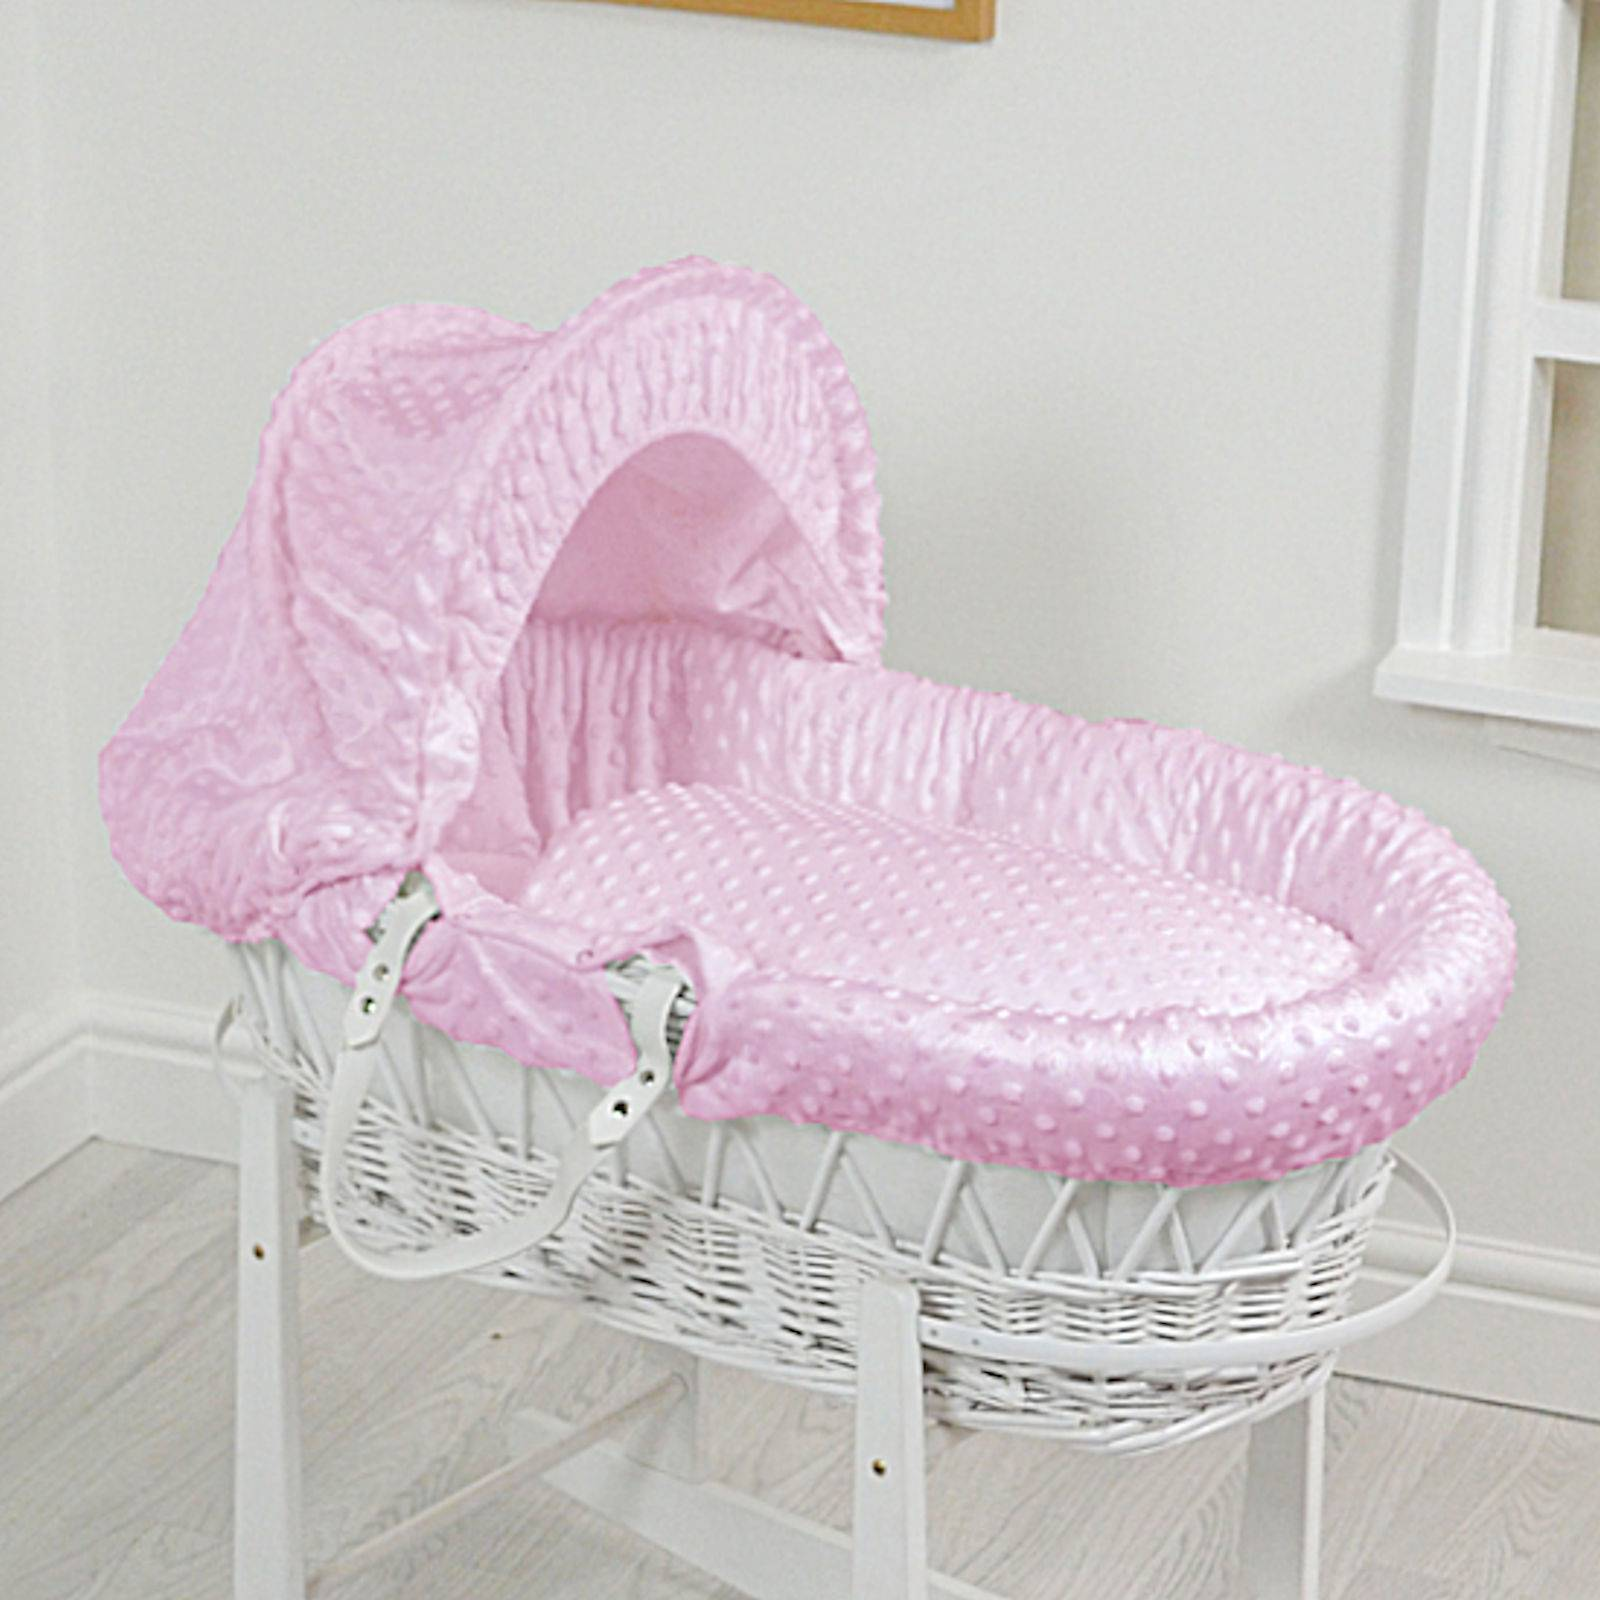 4 baby 4Baby Luxury Padded White Wicker Baby Moses Basket - Pink Dimple